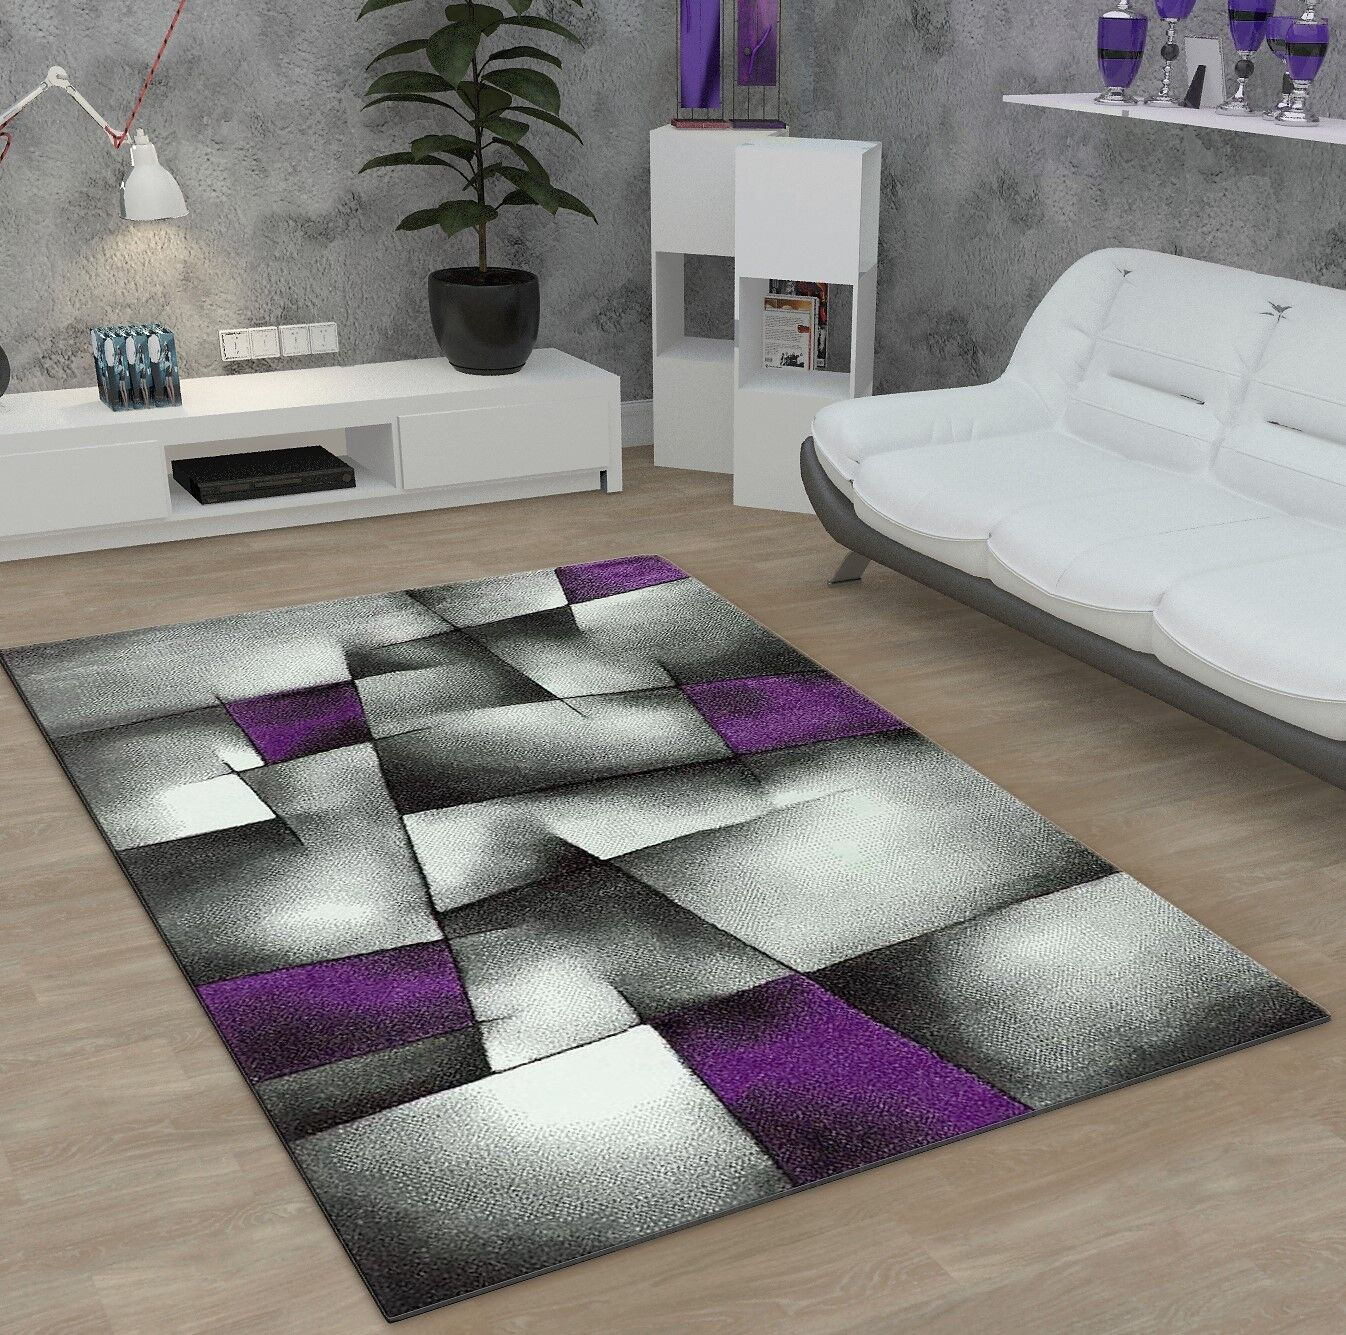 Gris Géométrique Tapis Violet Violet Tapis Moderne Abstract Carpet